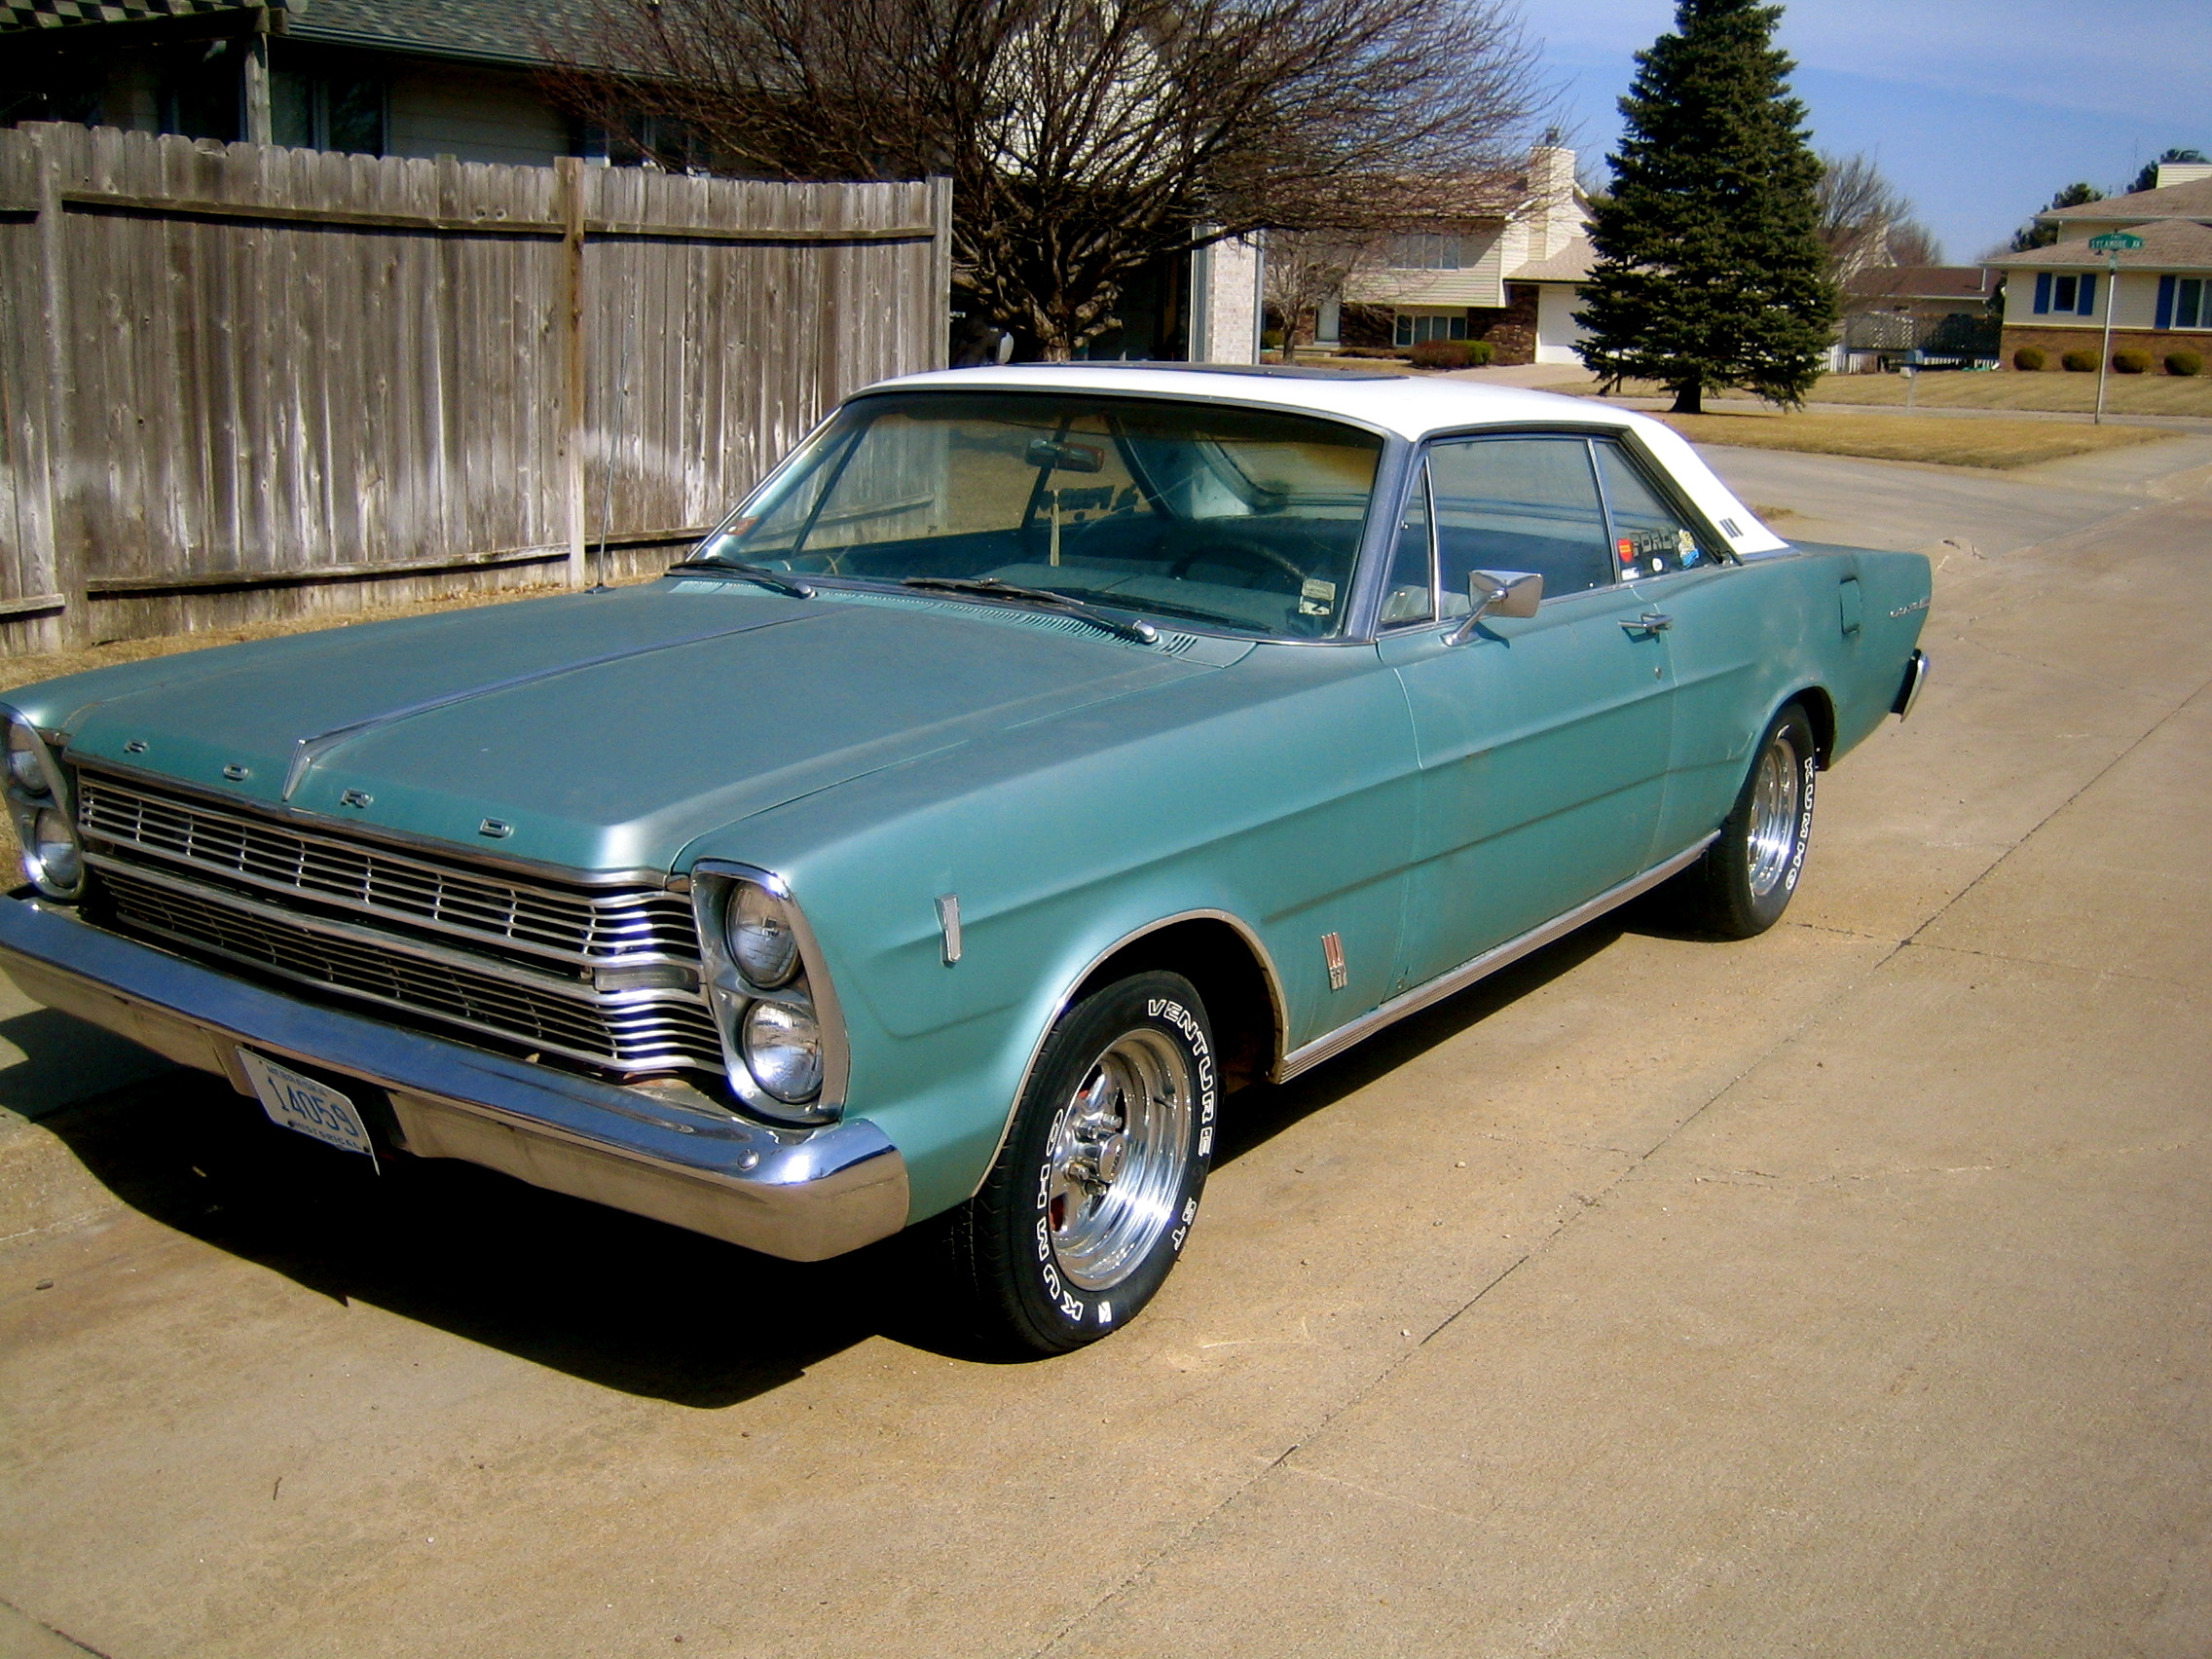 FEELINGFRESH's 1966 Ford Galaxie